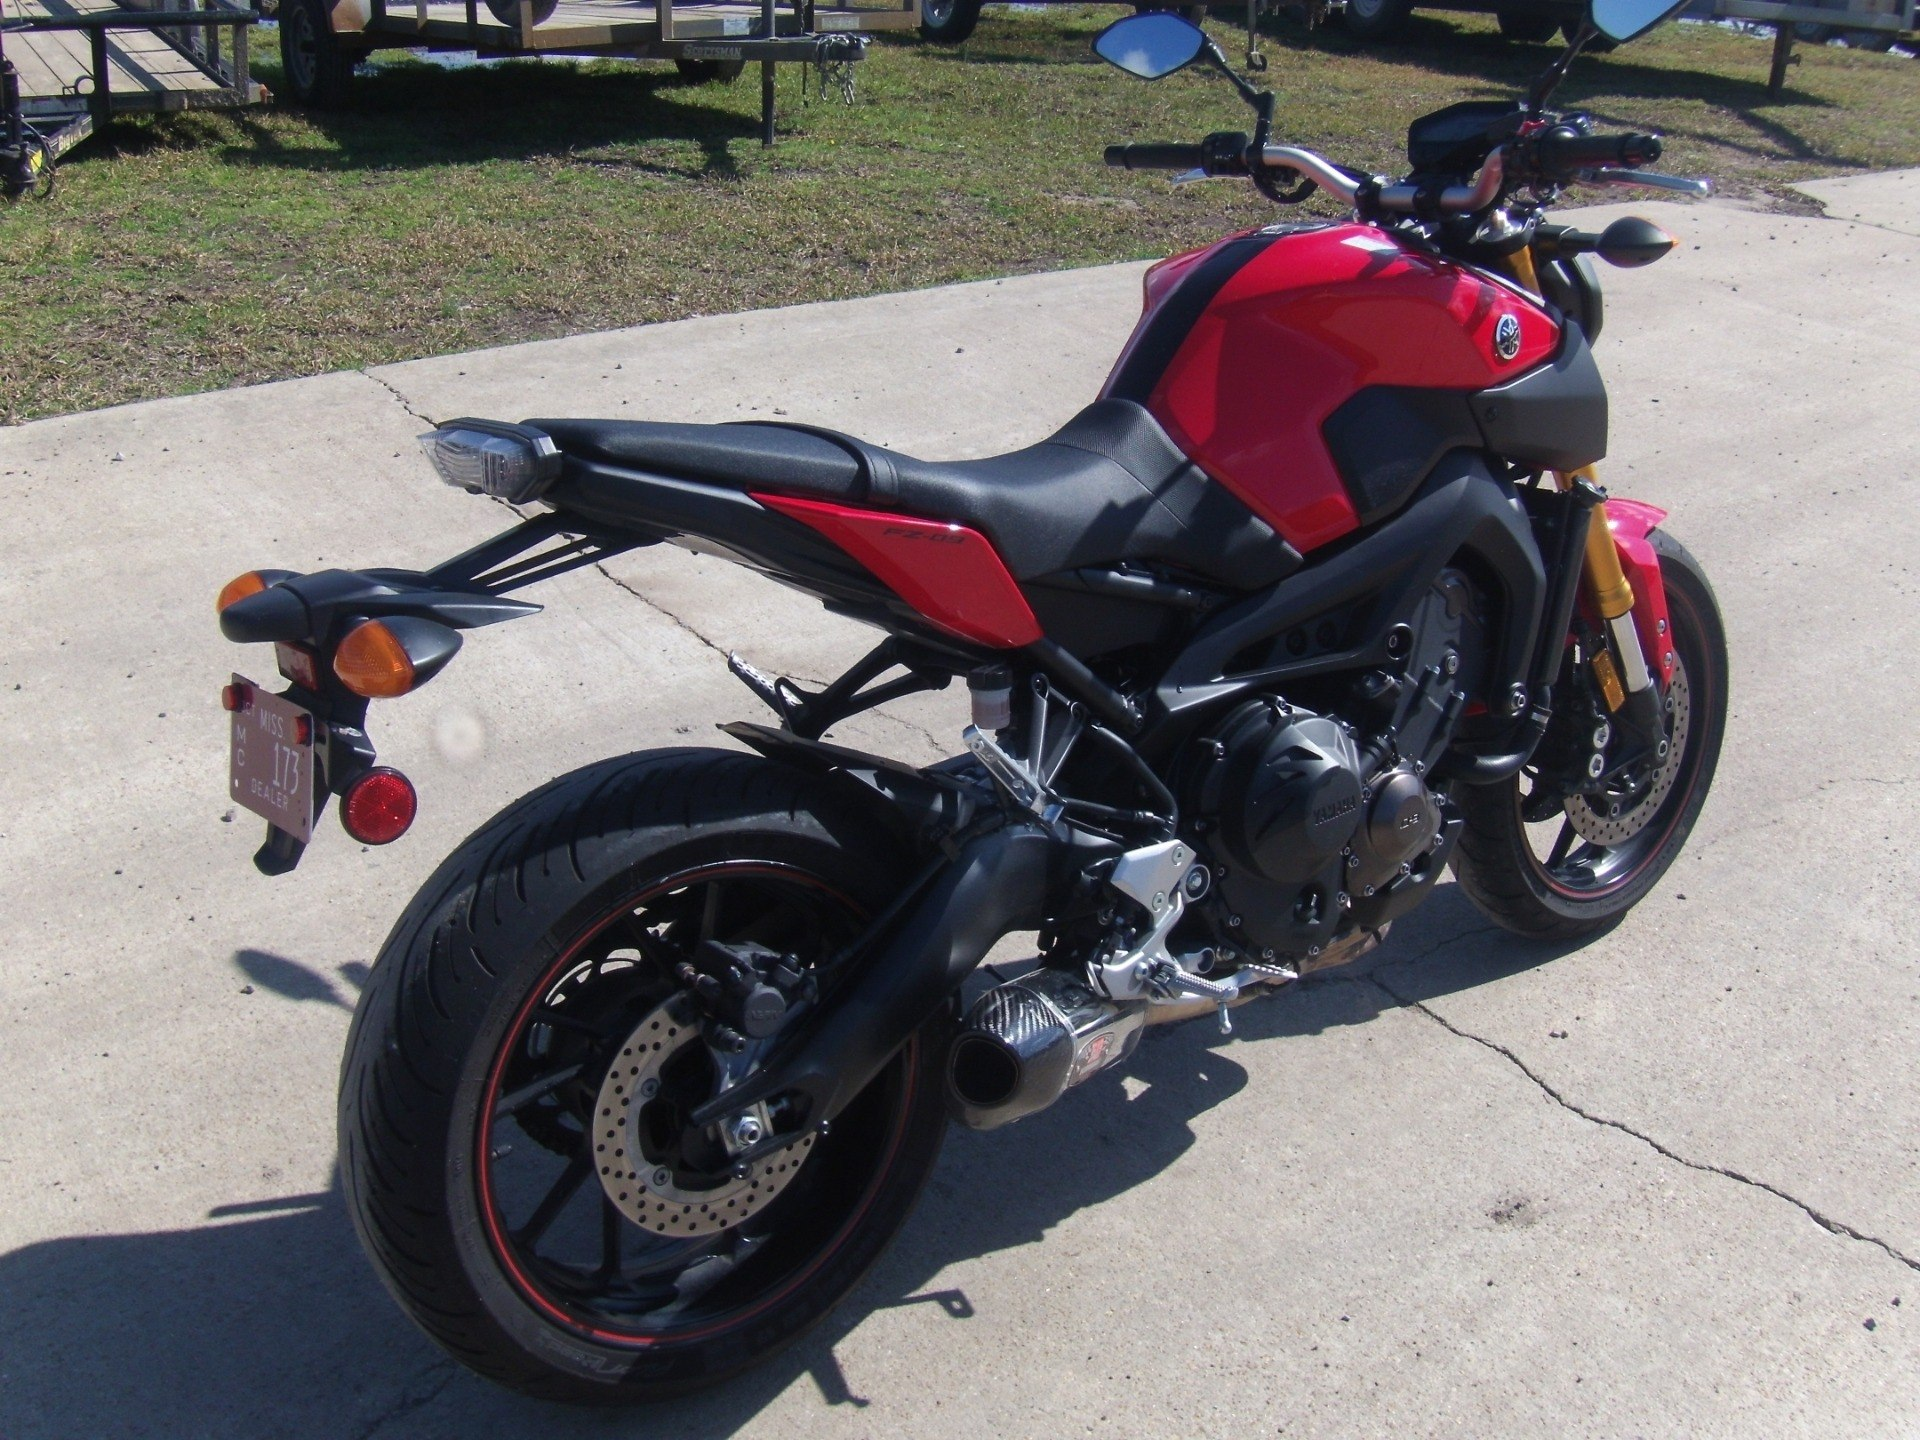 new 2014 yamaha fz 09 motorcycles in leland ms stock number y03997. Black Bedroom Furniture Sets. Home Design Ideas